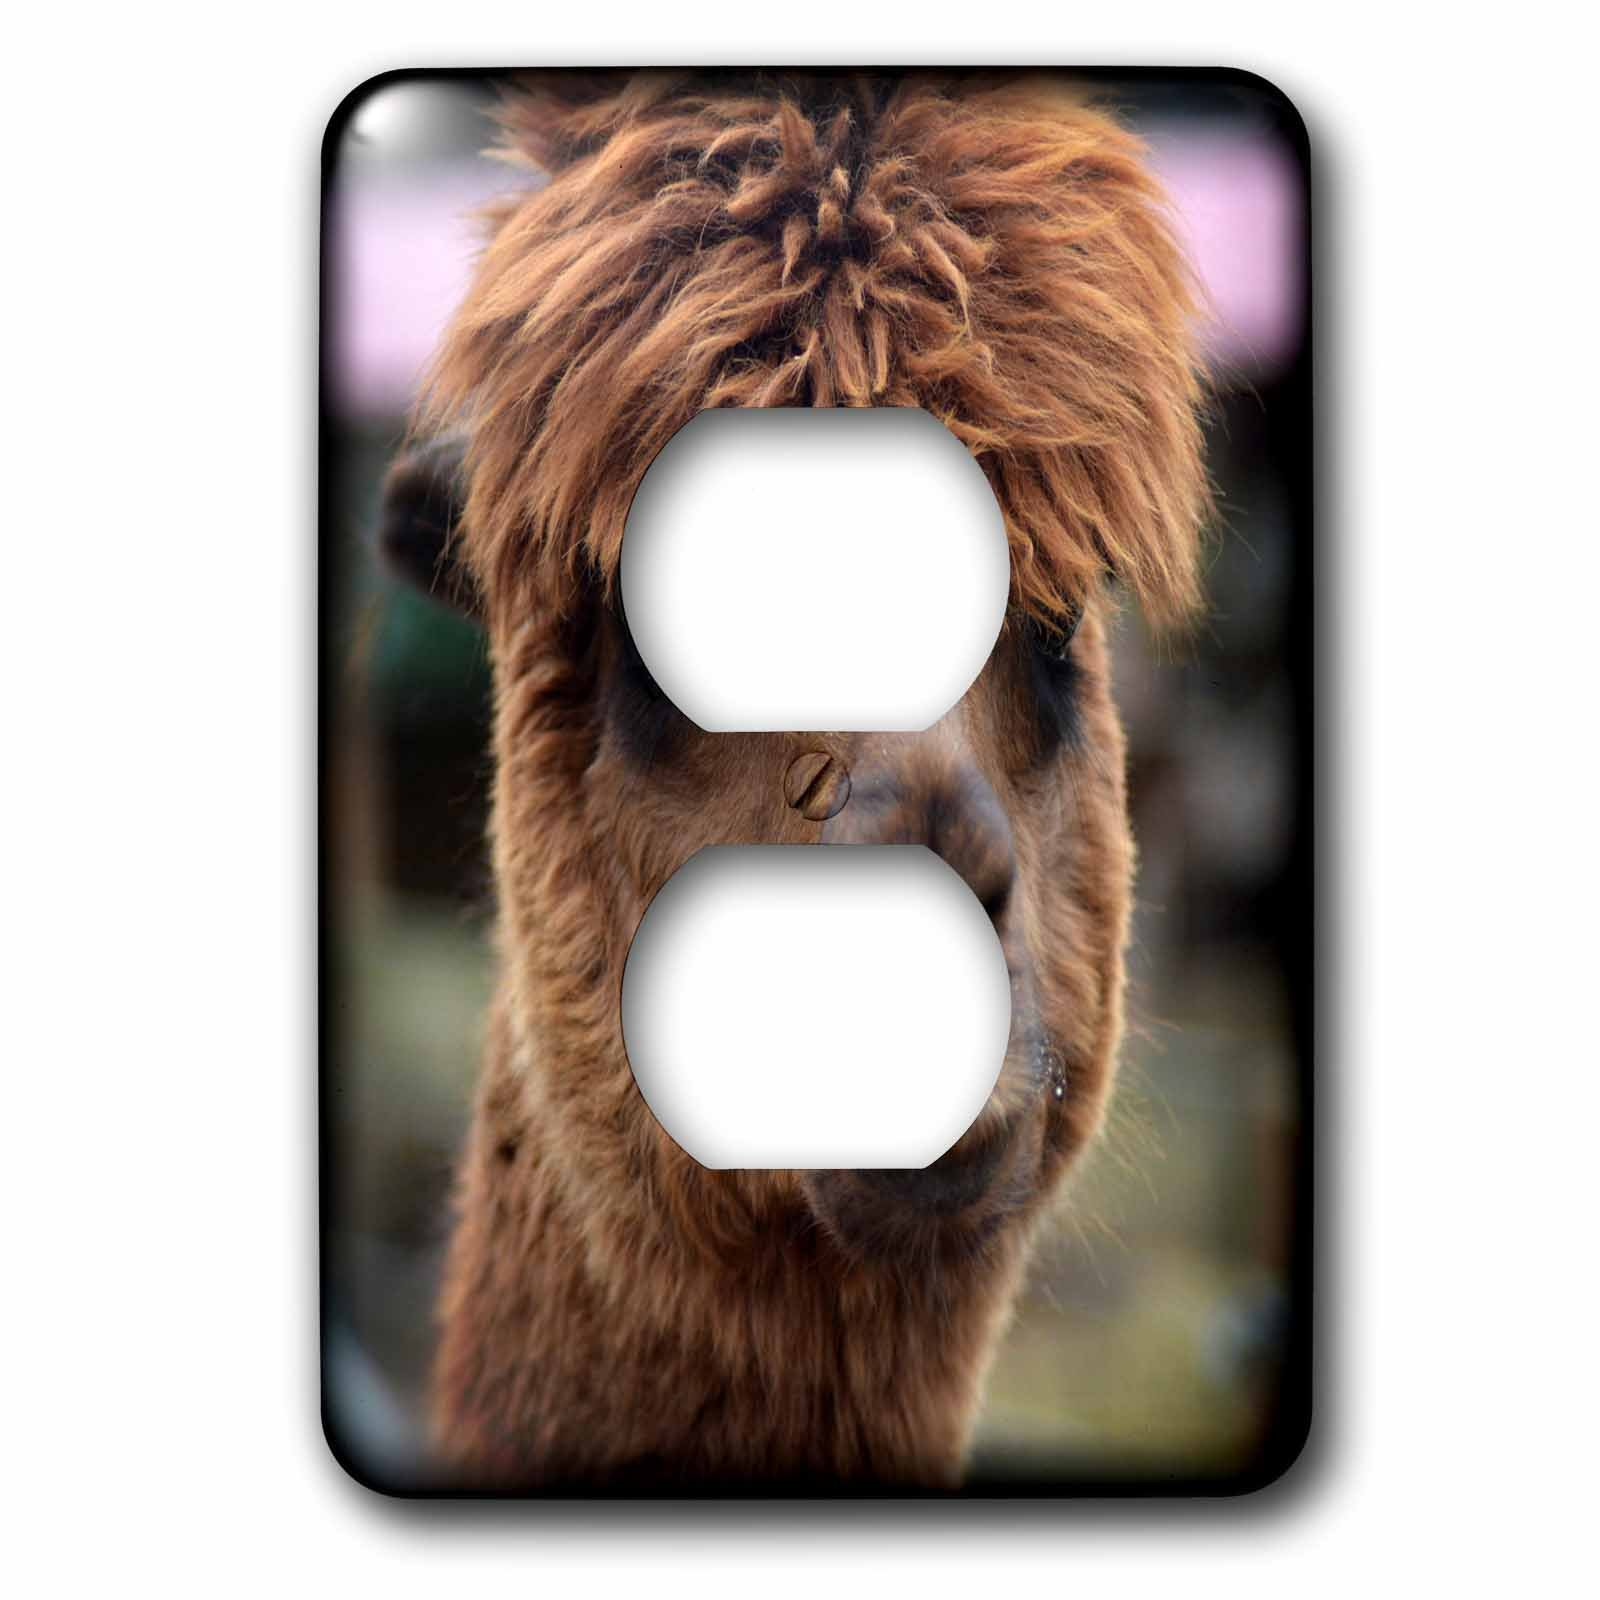 3dRose WhiteOaks Photography and Artwork - Lamas - What a Hair Day is a photo of a lama having a bad hair day - Light Switch Covers - 2 plug outlet cover (lsp_265351_6)